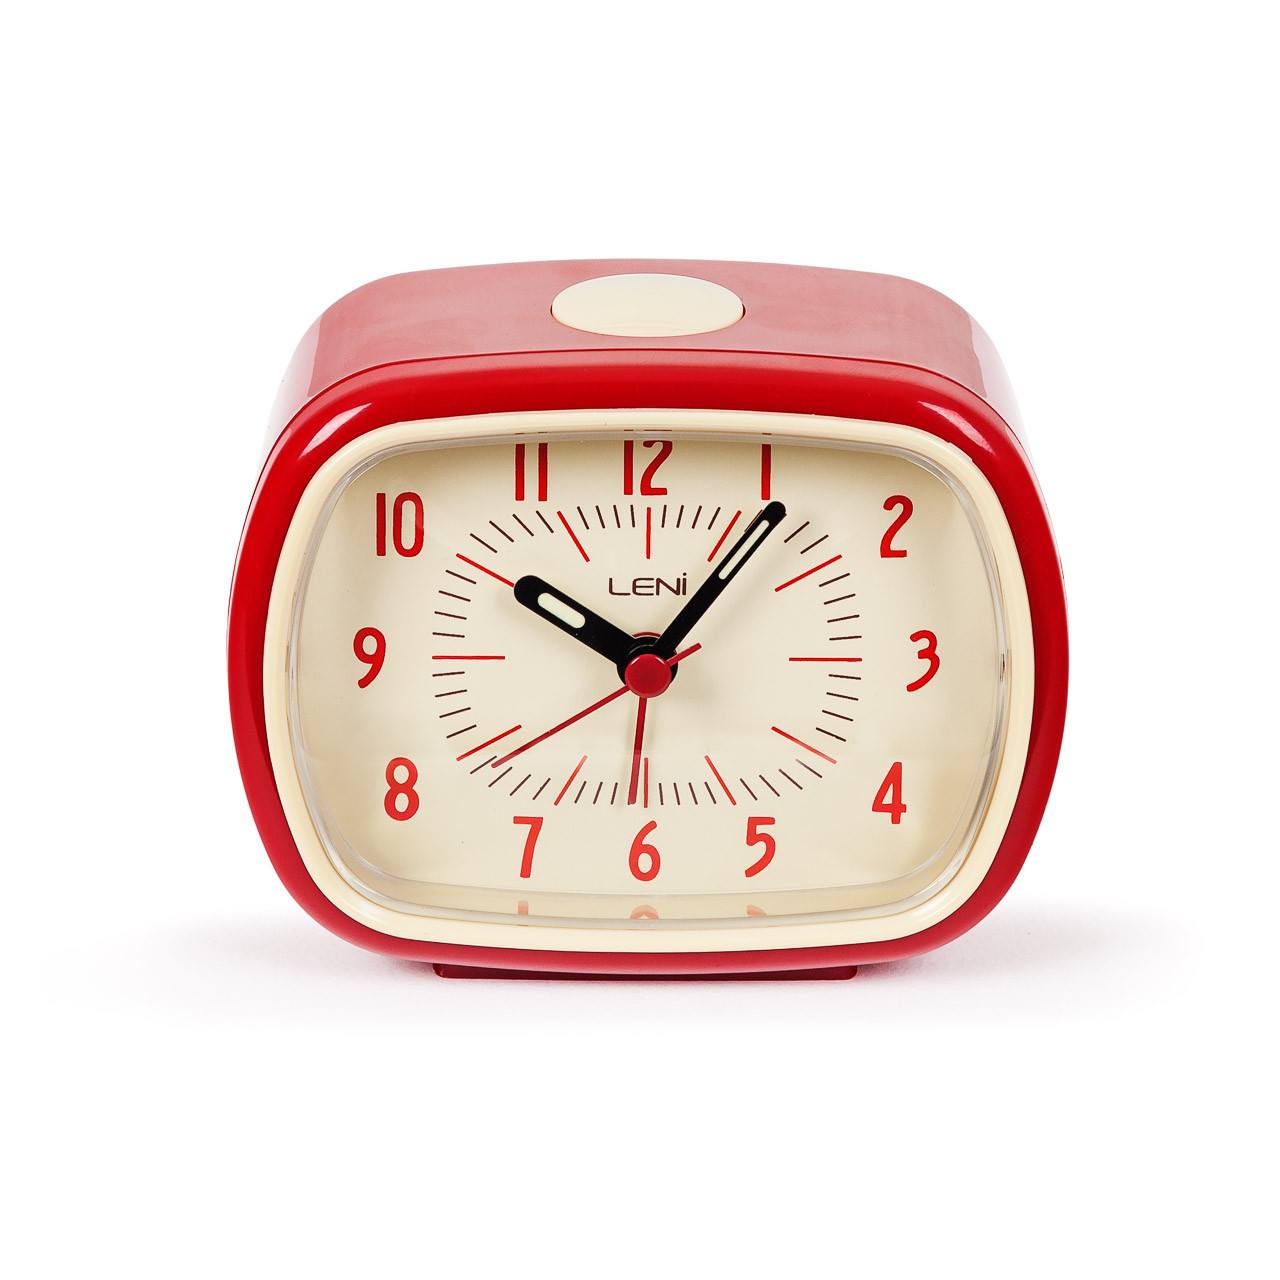 Retro Alarm Clock Red Buy Funky Alarm Clock Bedside Clock